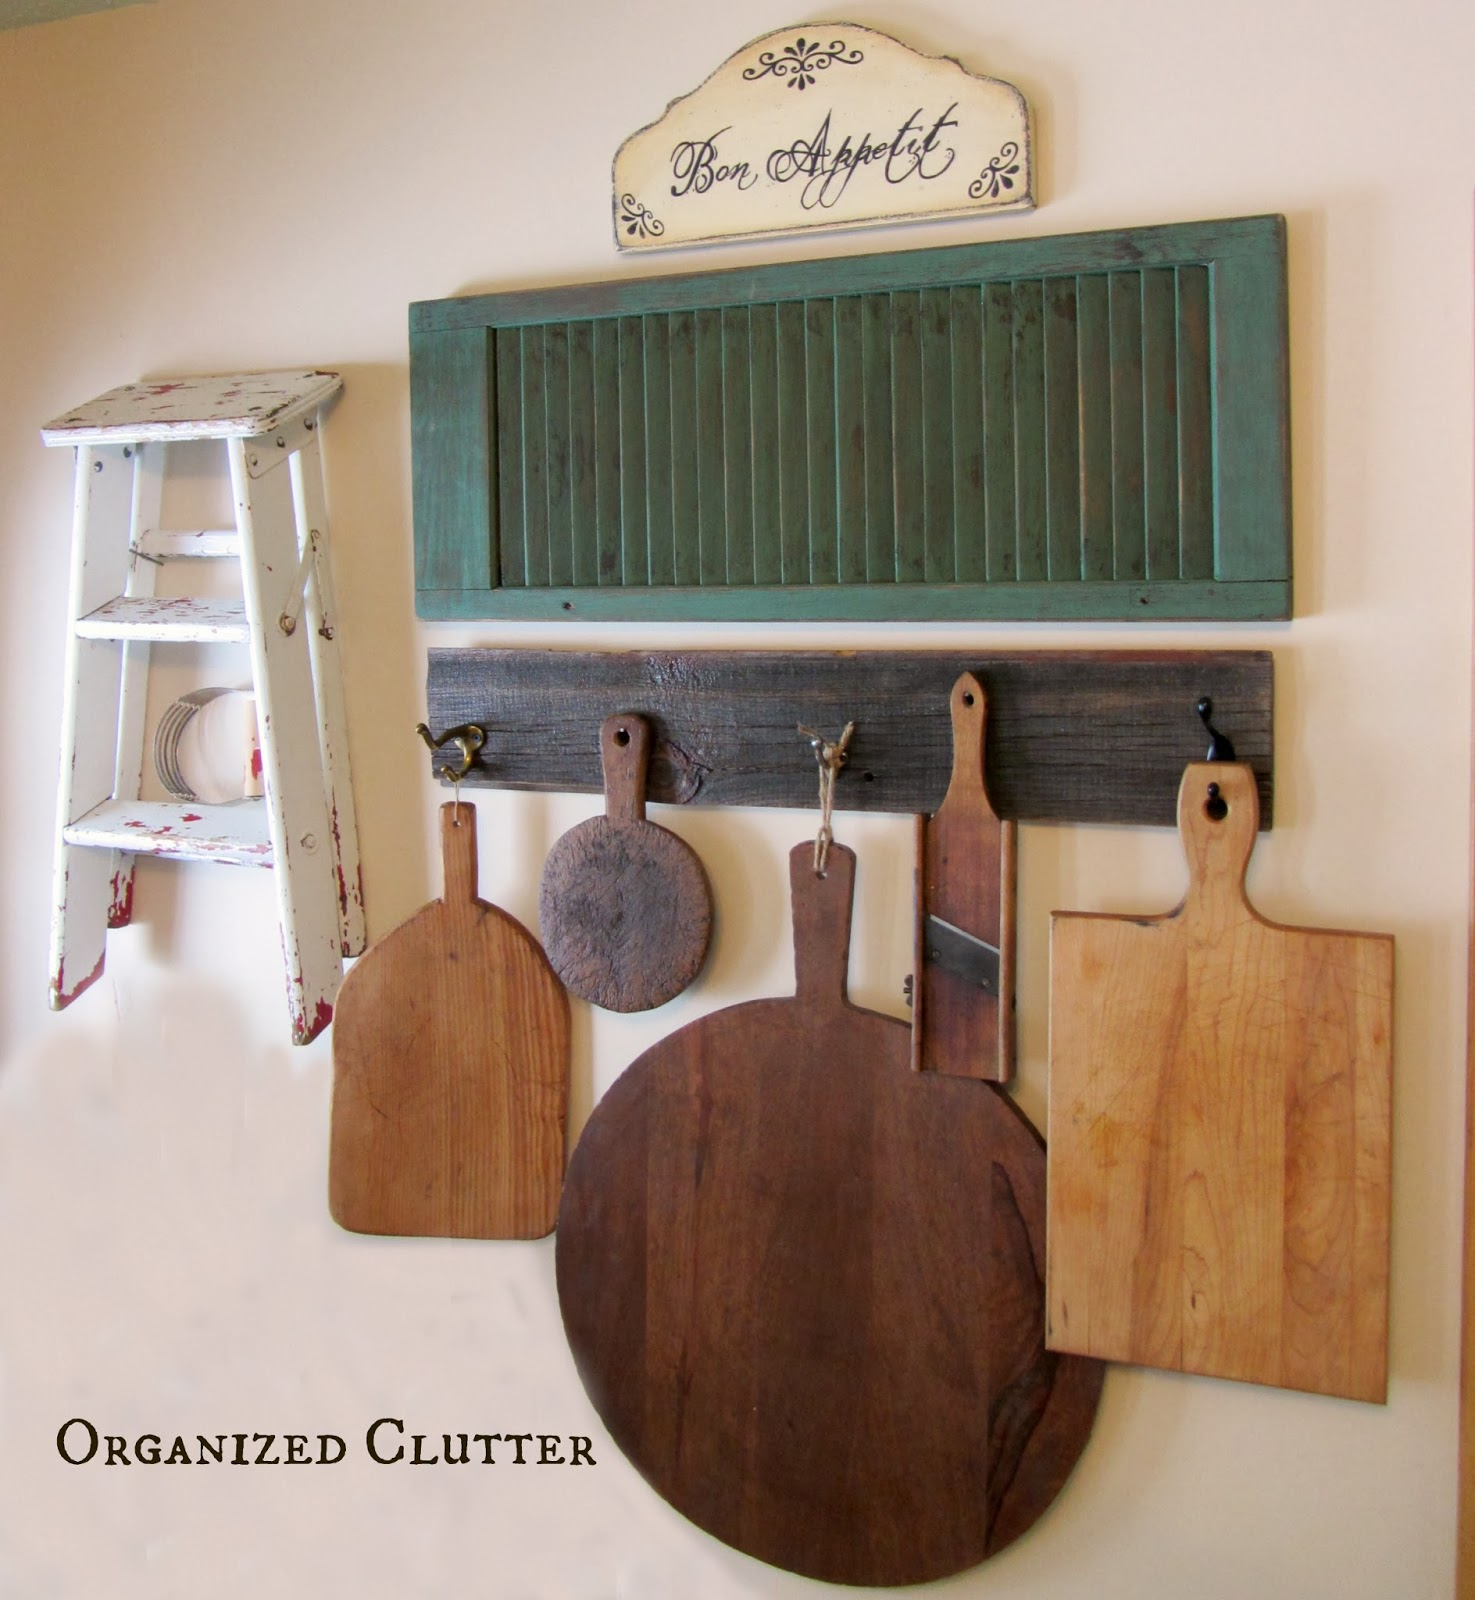 Rustic Cutting Board Kitchen Wall Display www.organizedclutterqueen.blogspot.com